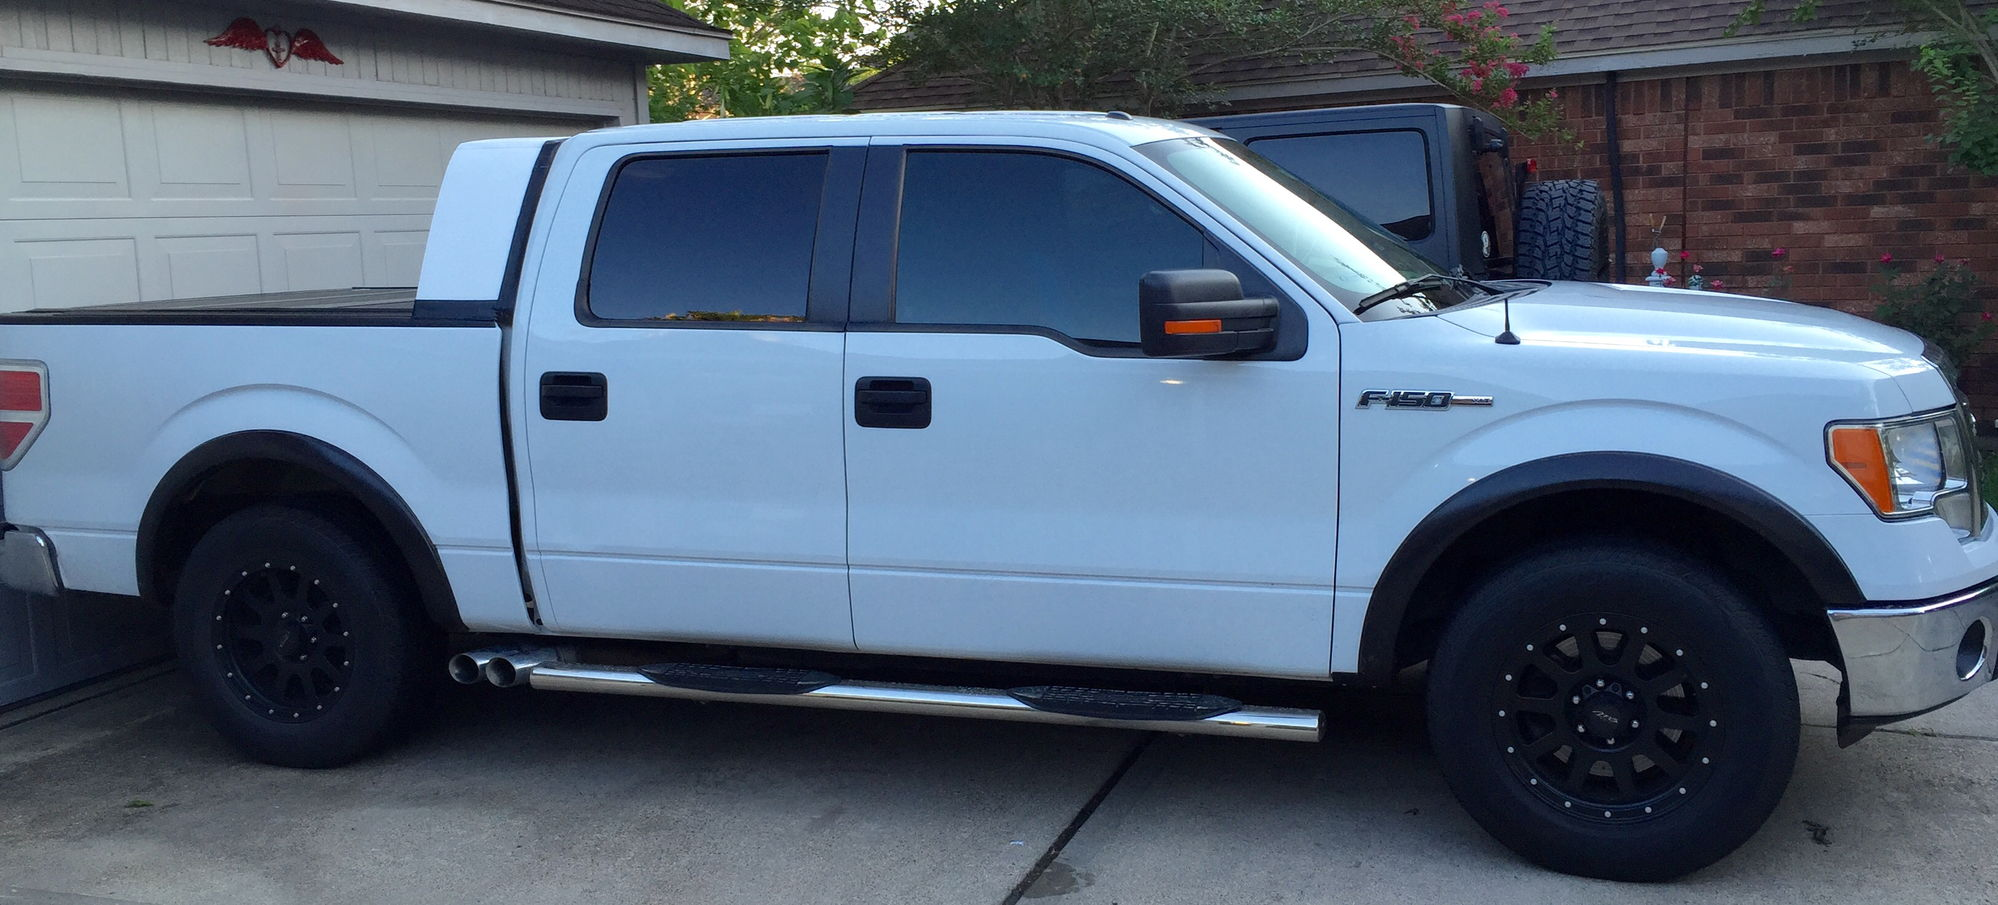 2015 fuel mileage page 6 ford f150 forum community of ford truck fans. Black Bedroom Furniture Sets. Home Design Ideas